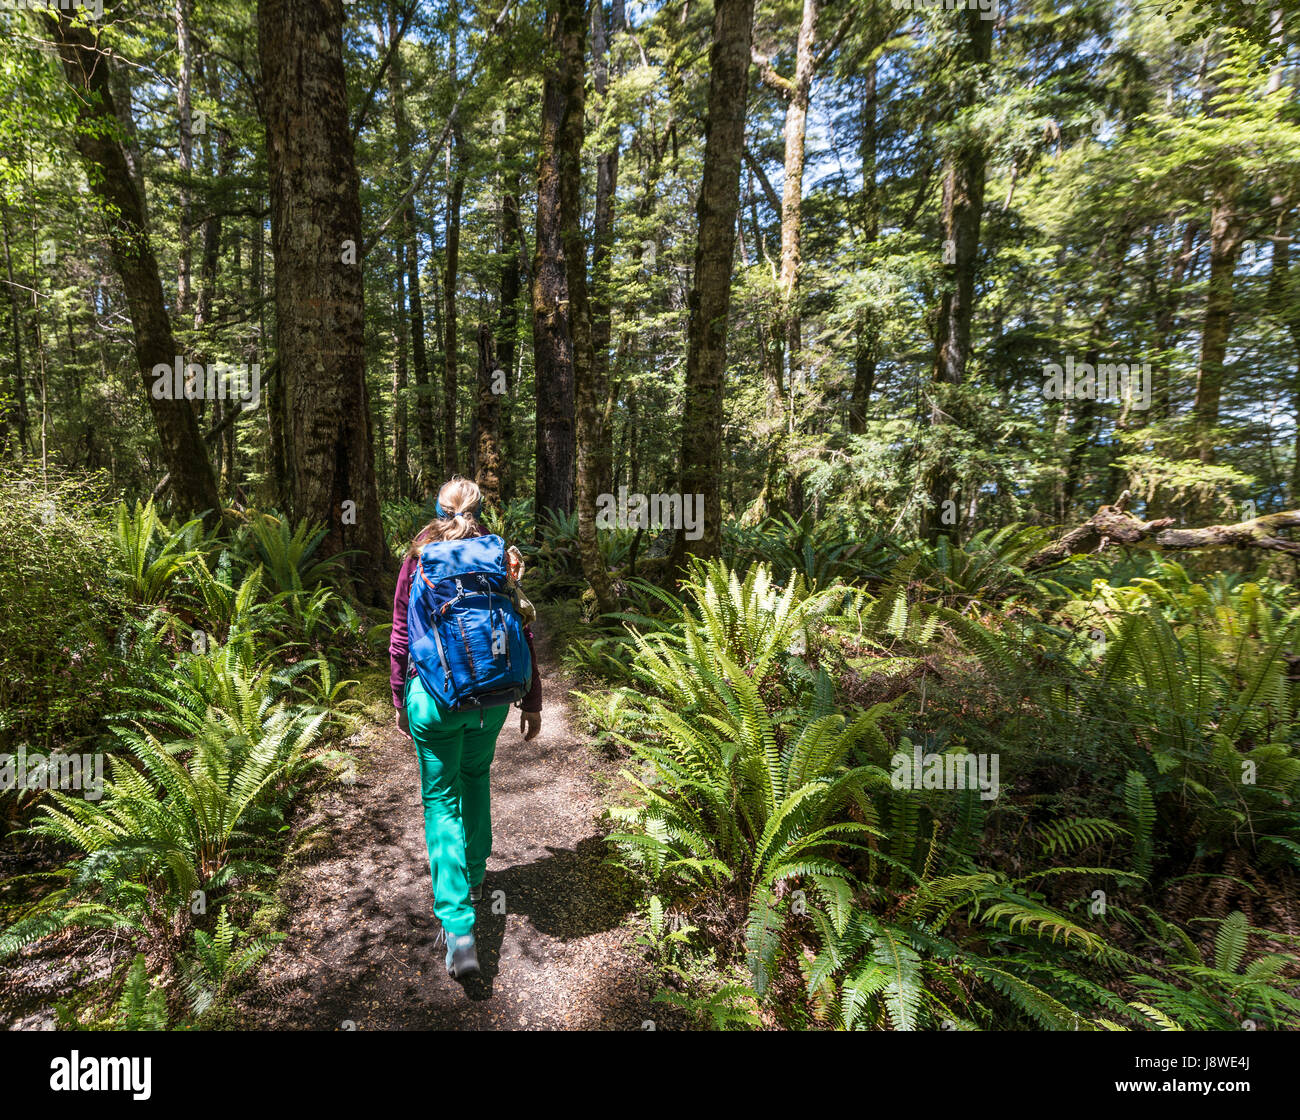 Female hiker on Kepler Track, Forest with Ferns, Fiordland National Park, Southland, South Island, New Zealand - Stock Image